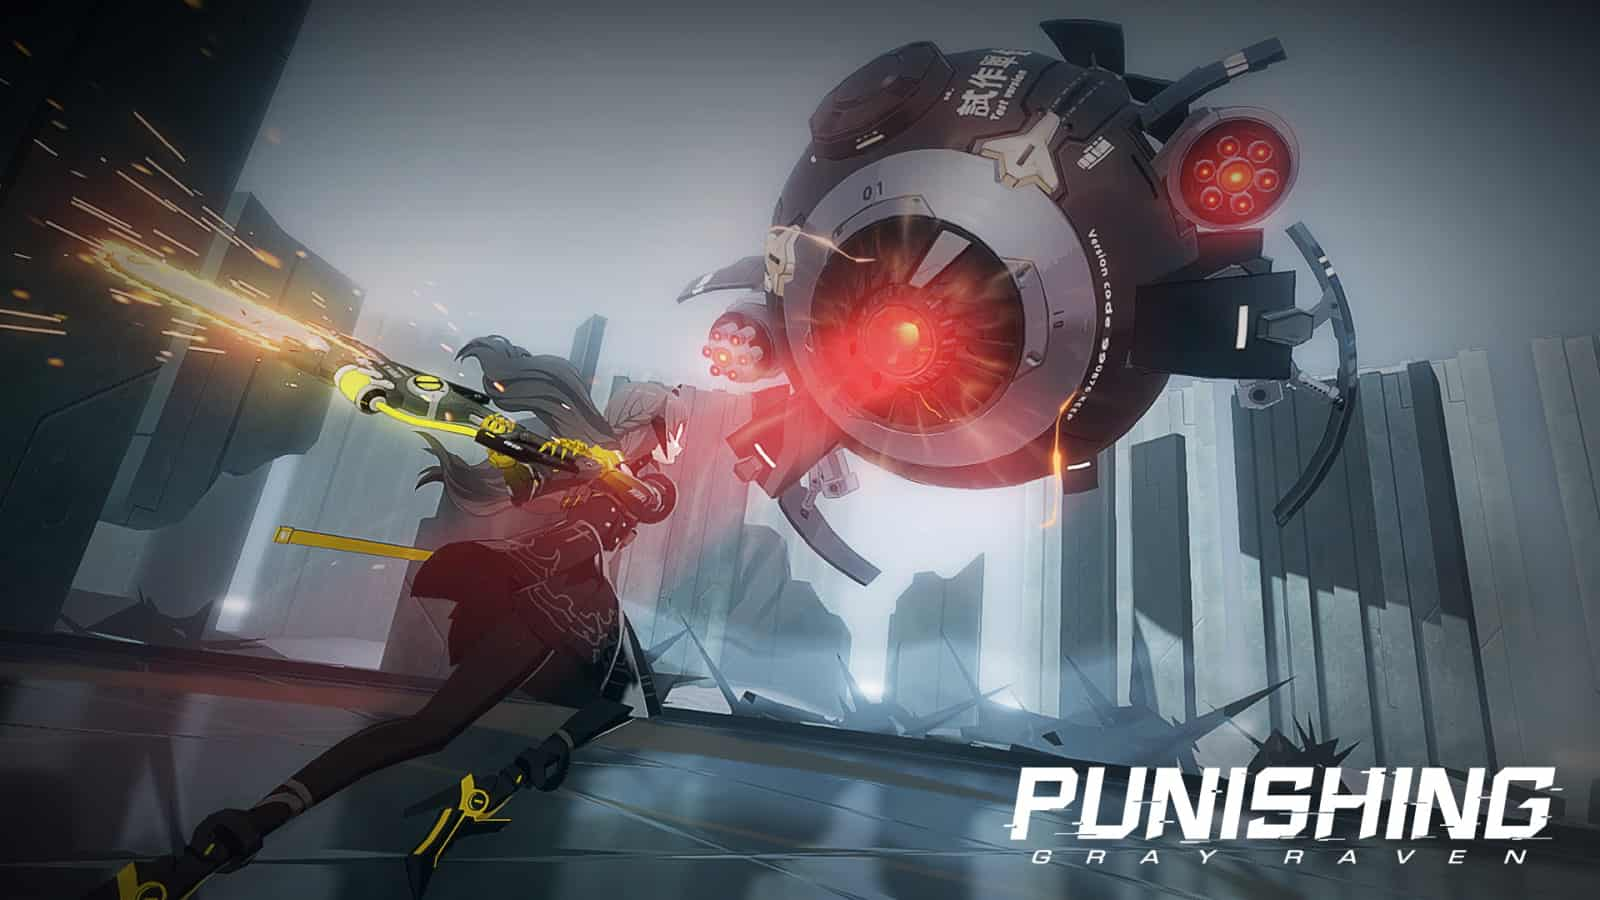 Keep An Eye Out For This Awesome-Looking Cyberpunk Action RPG